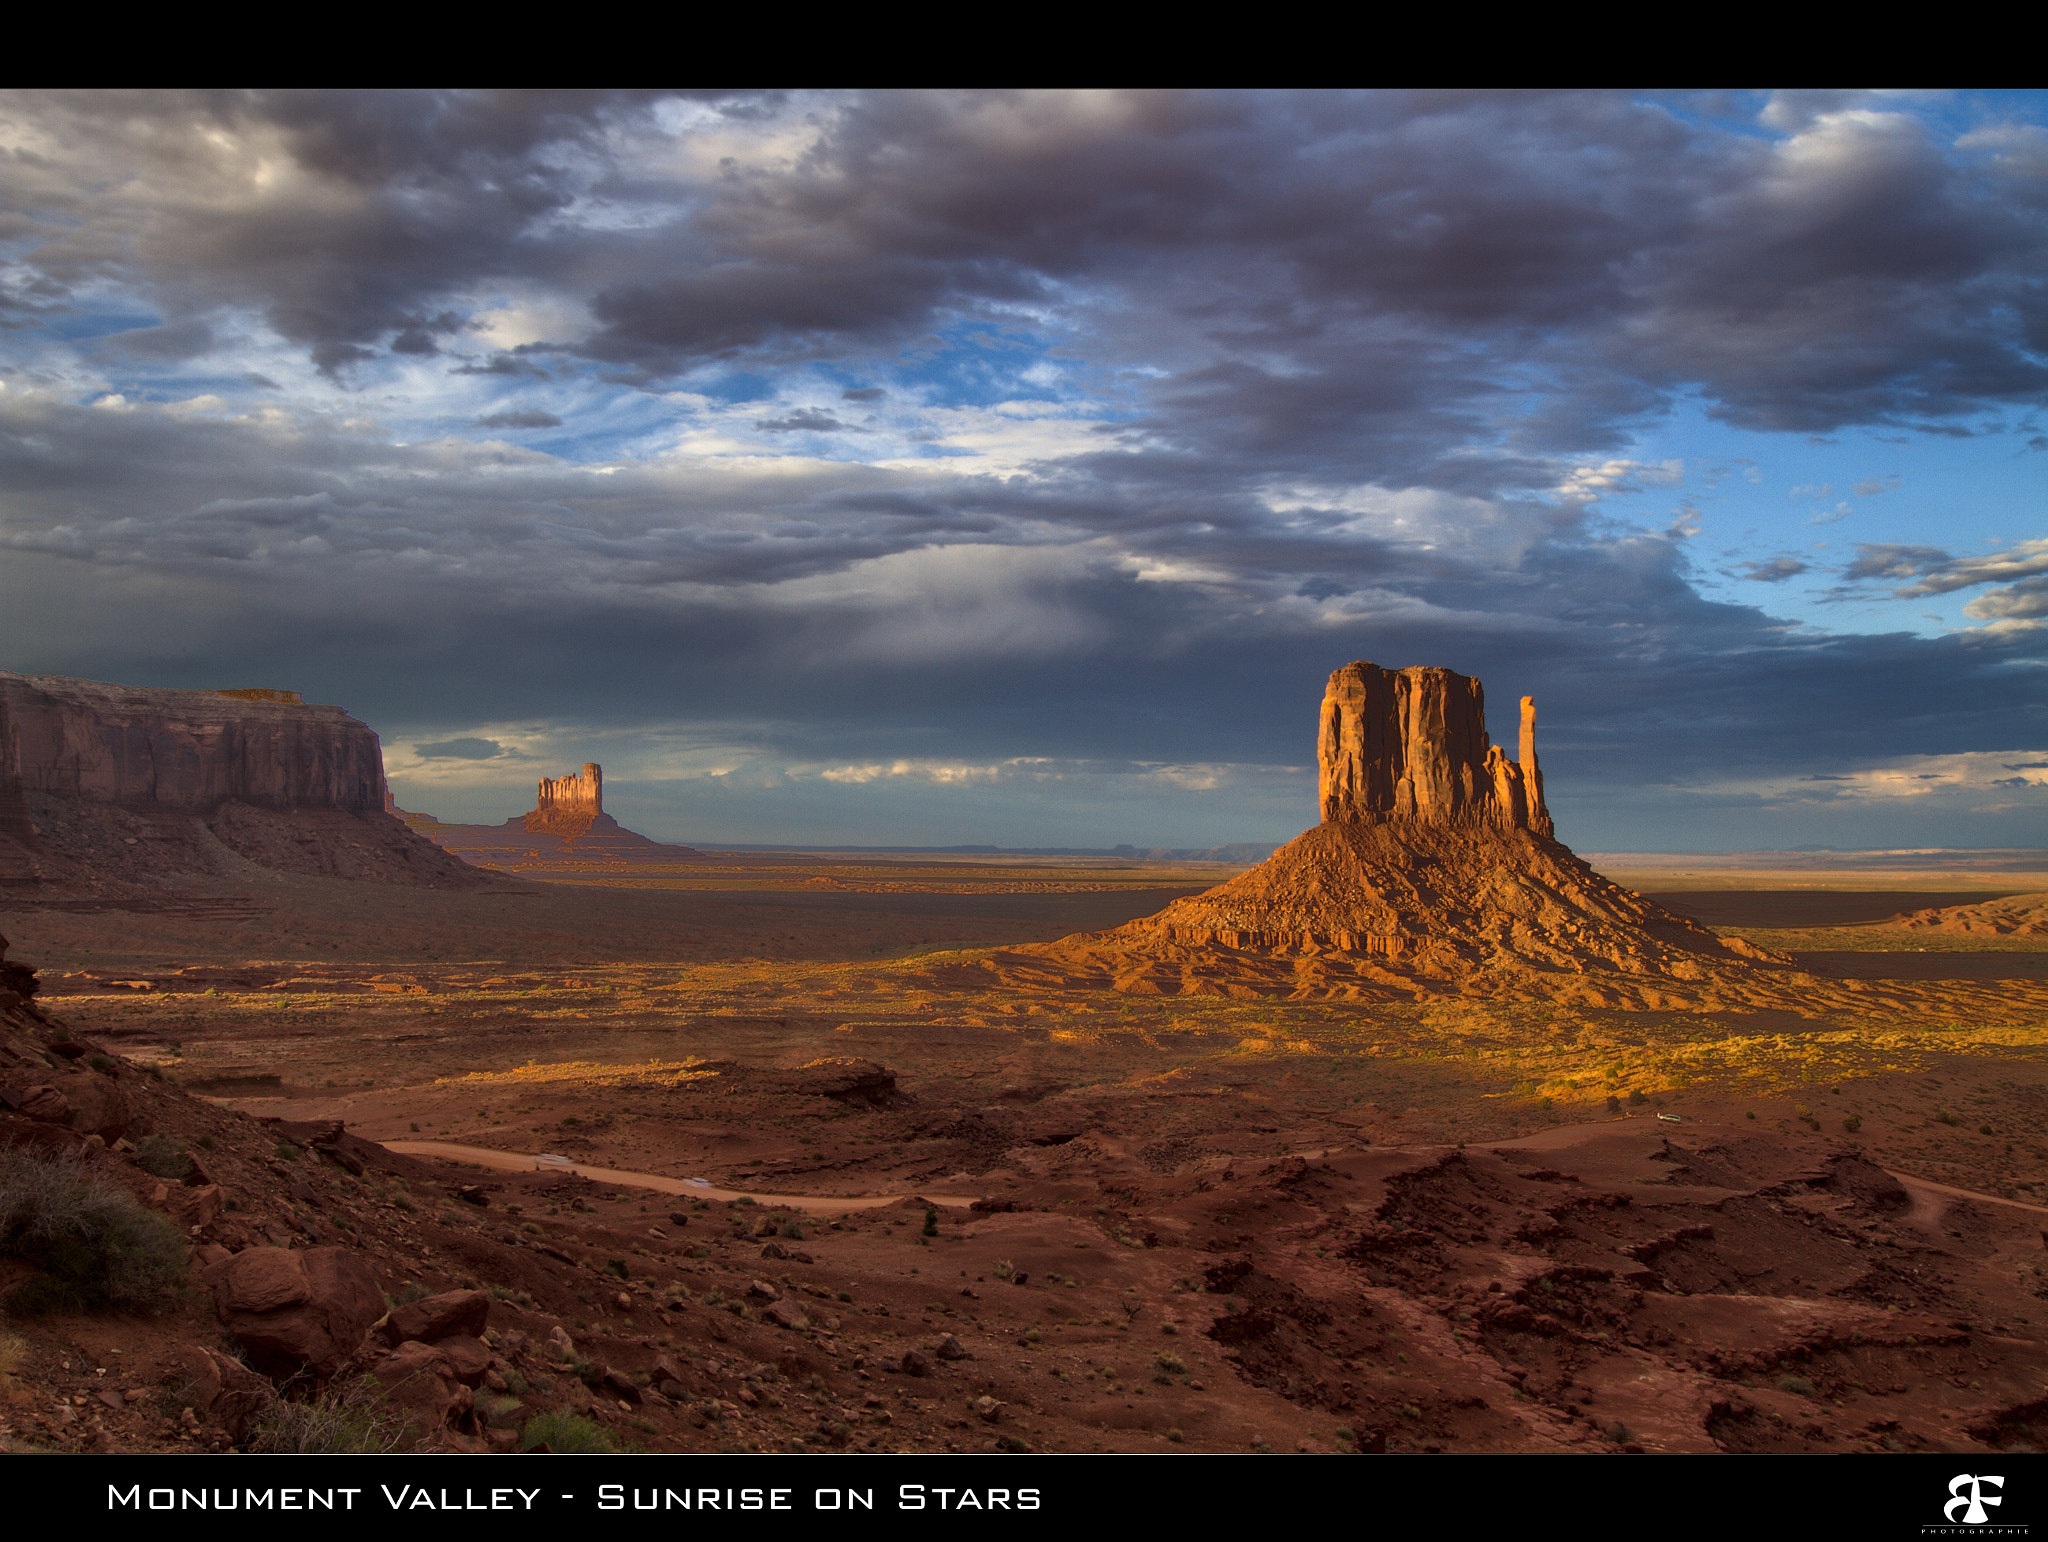 Photograph Monument Valley - Sunrise on Stars by Fabien BELLANGER on 500px